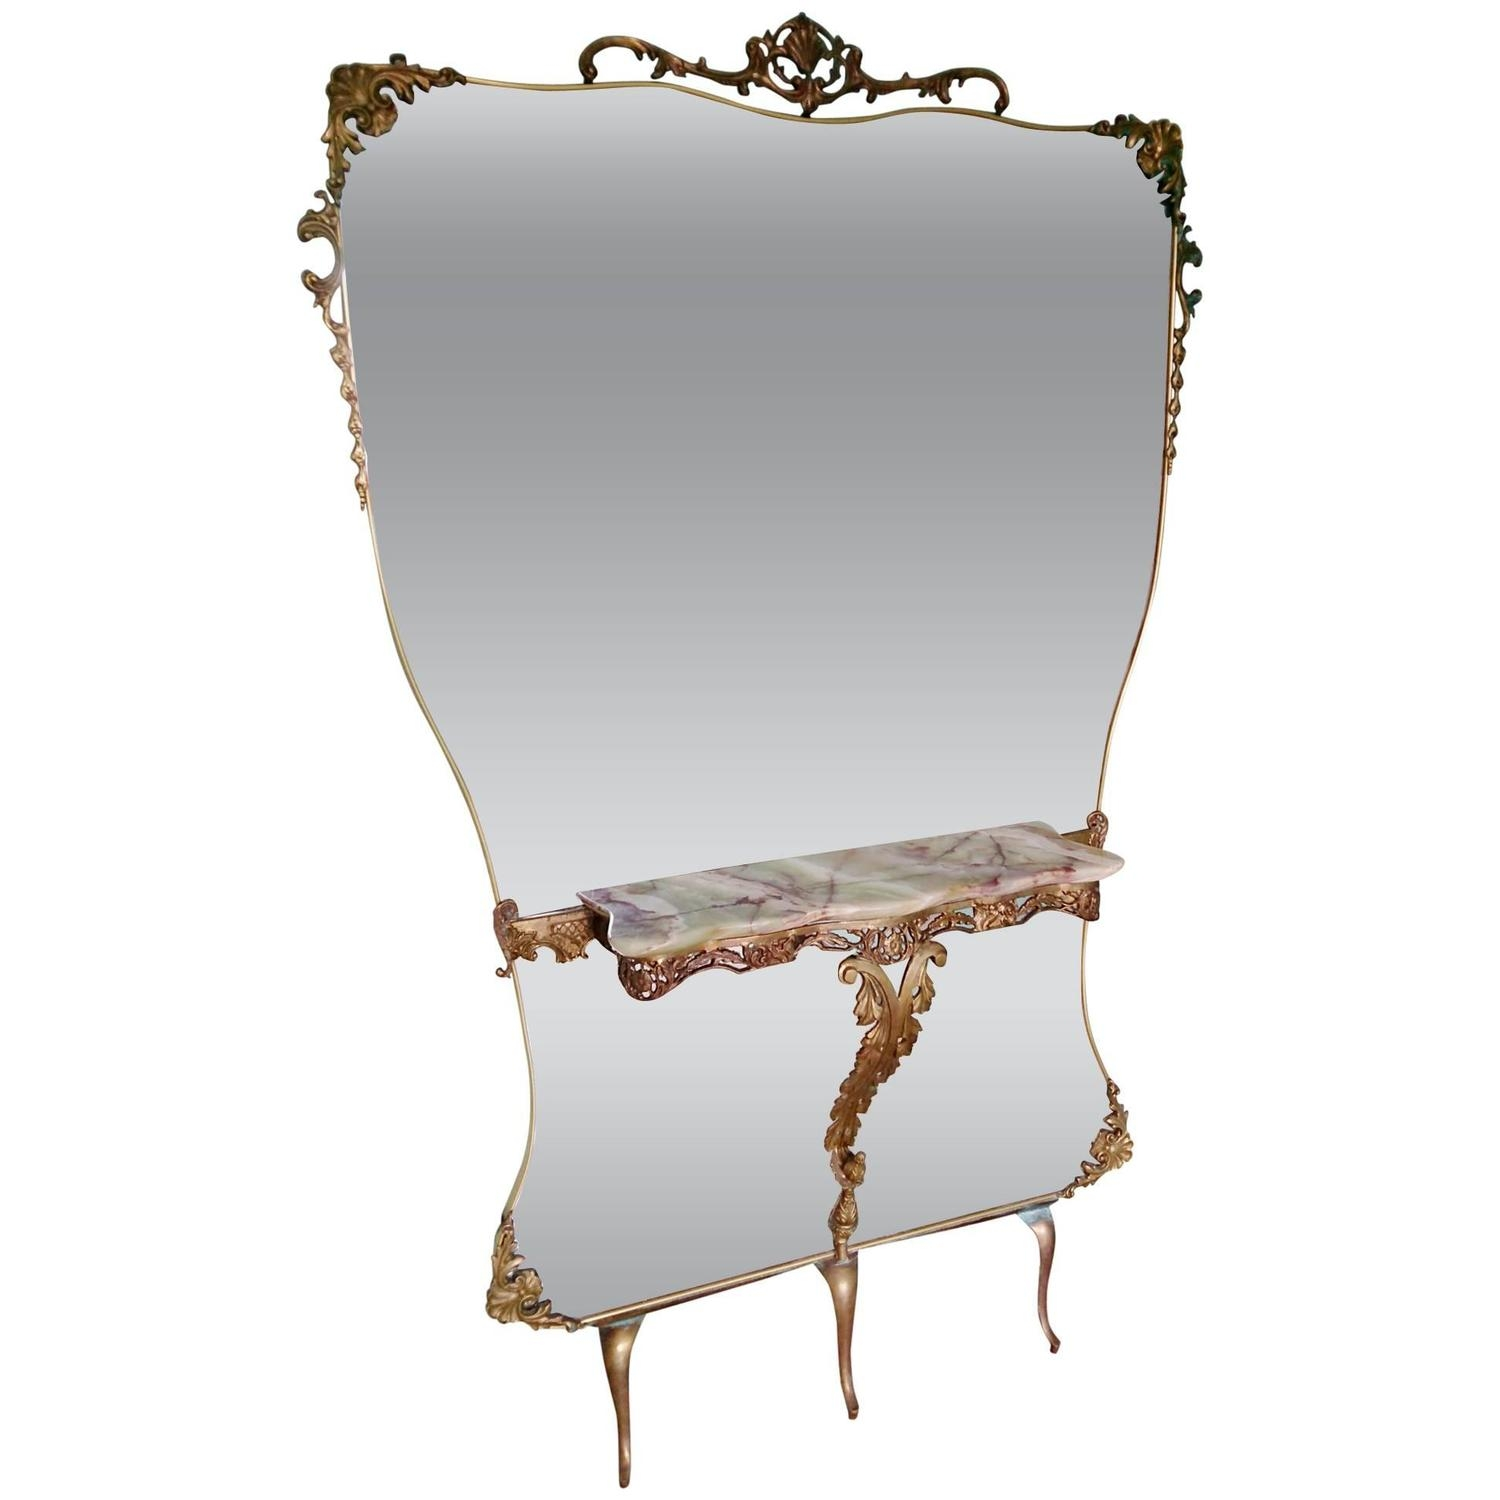 Antique French Gold Gilt Floor Standing Mirror At 1stdibs With Regard To Gold Standing Mirror (View 12 of 15)